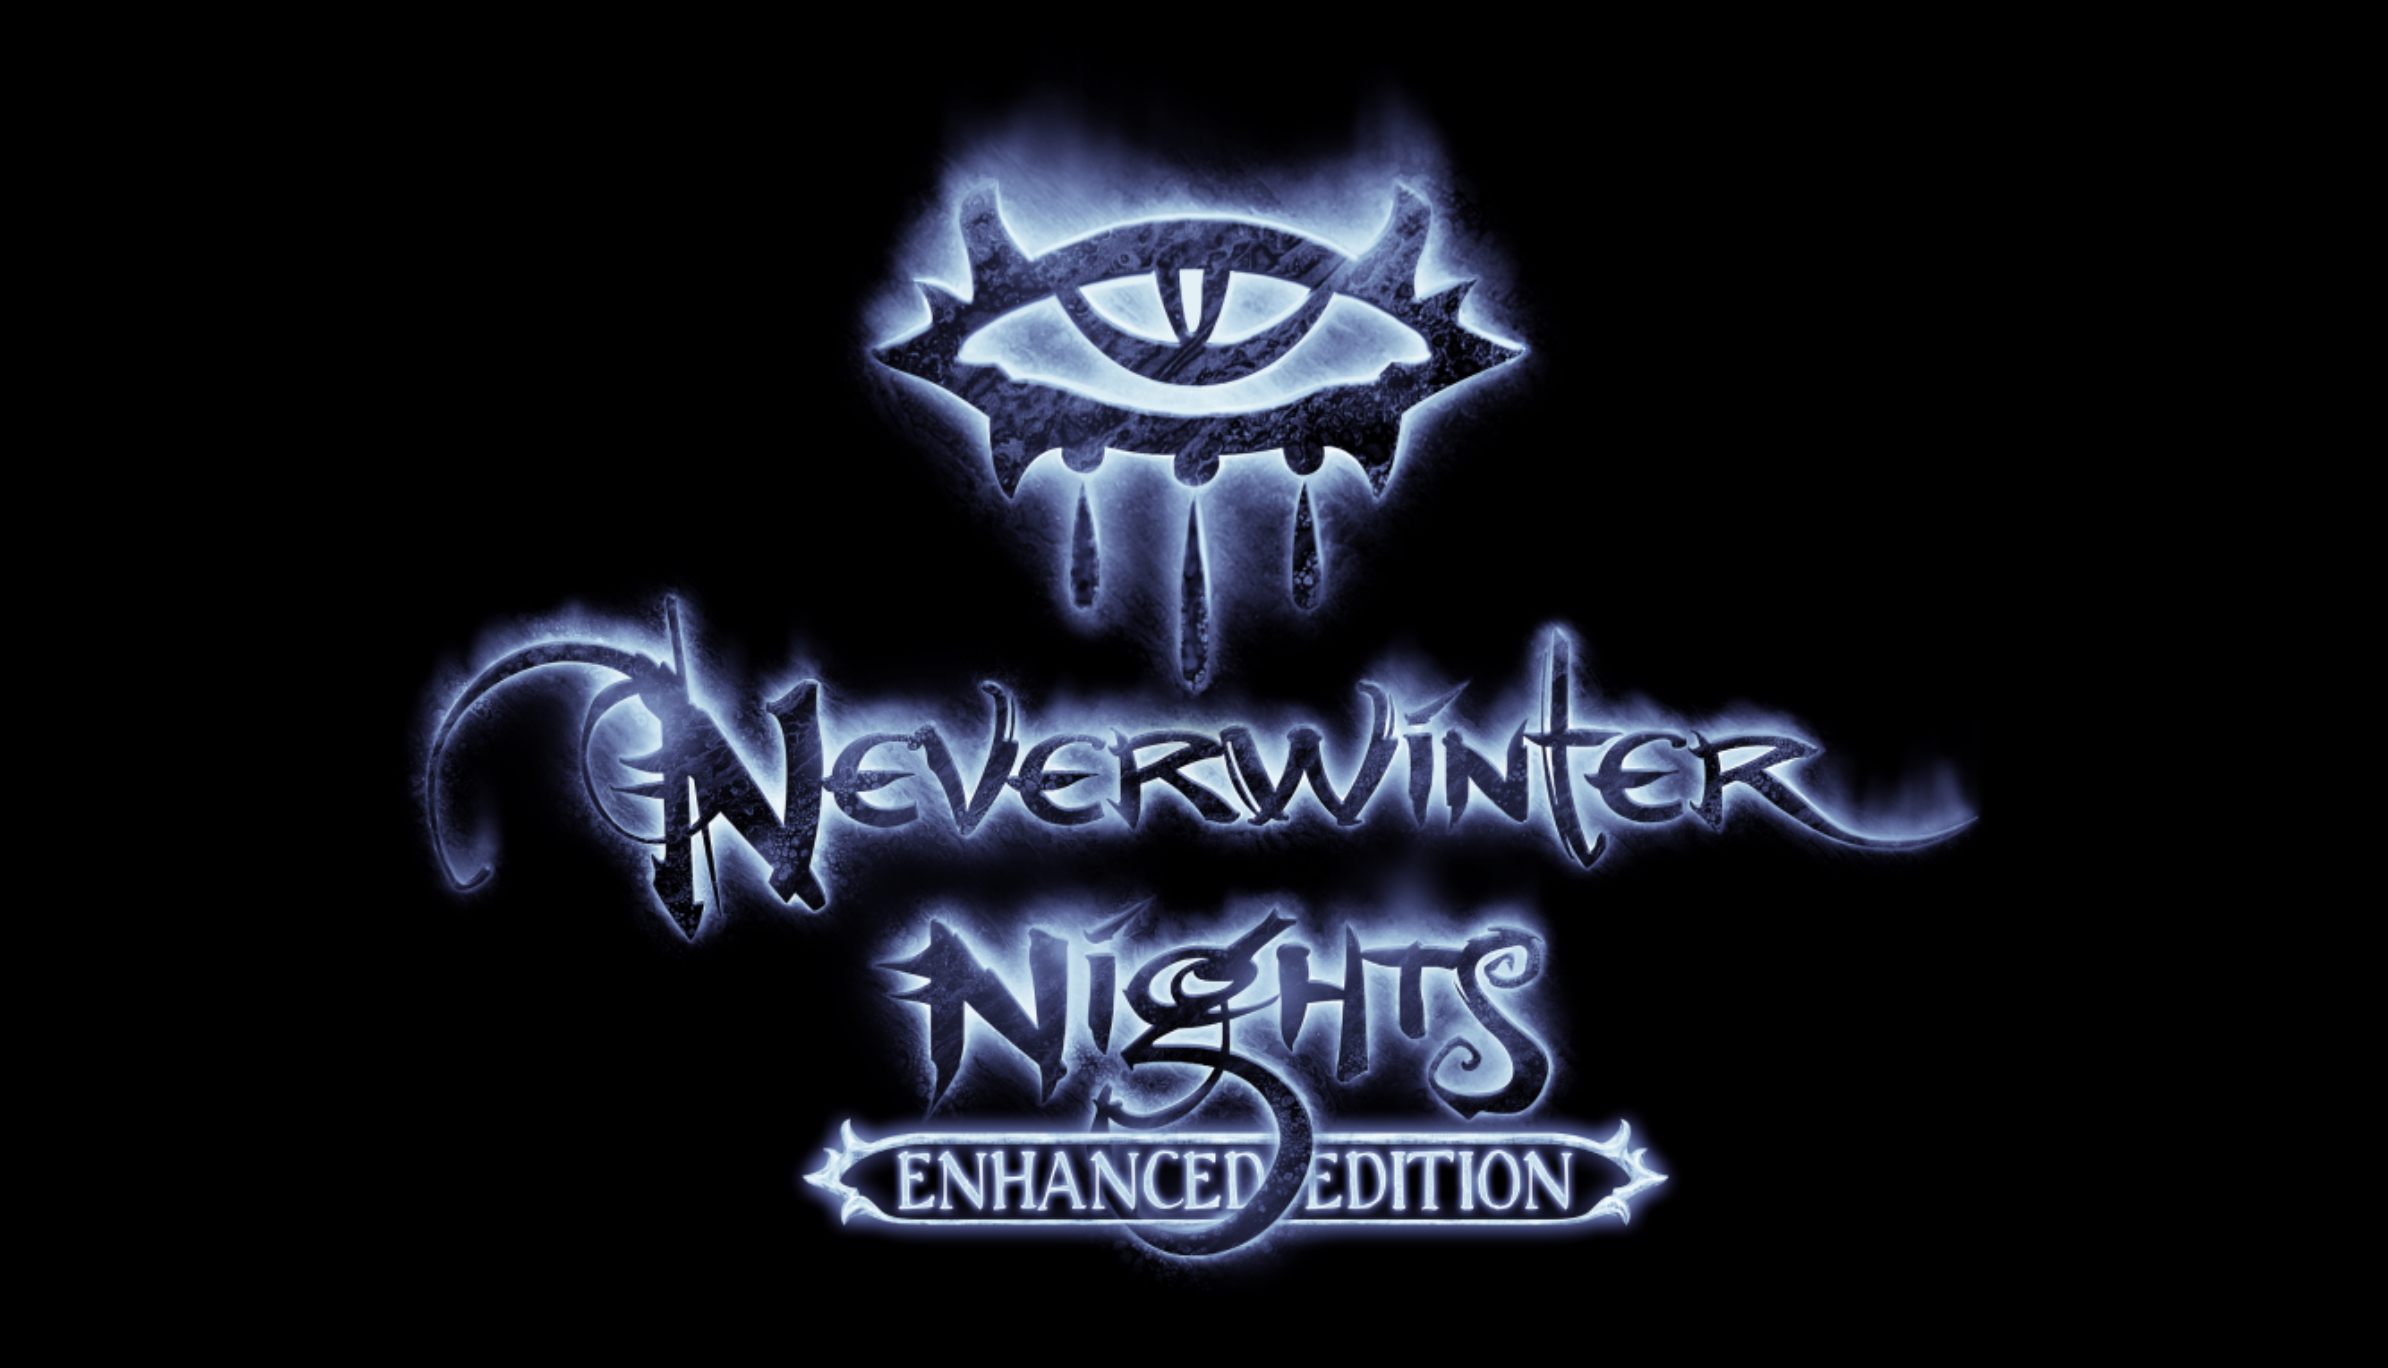 'Neverwinter Nights: Enhanced Edition' Gets Its Biggest Discount Yet on iOS and Android for a Limited Time